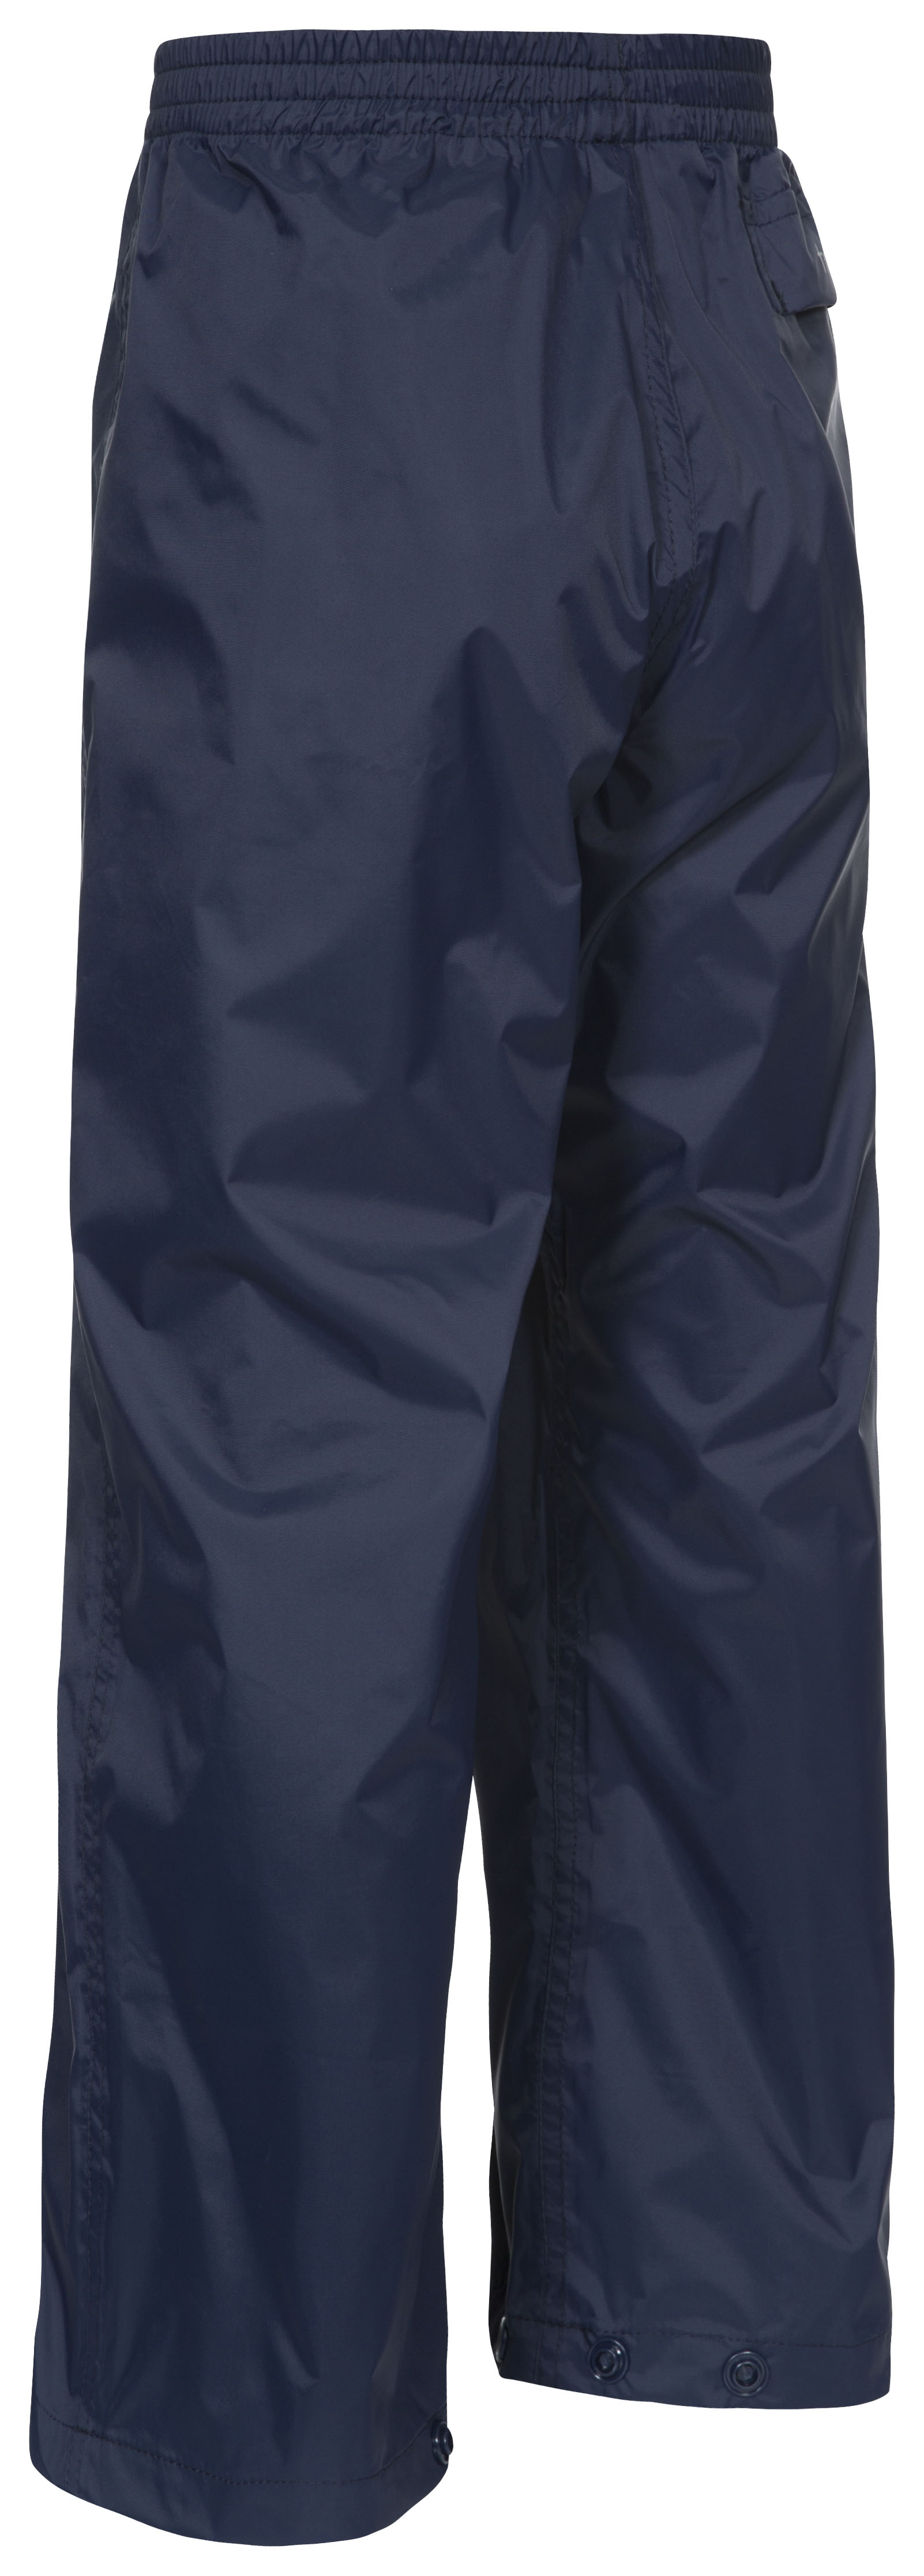 Trespass-Mens-Womens-Waterproof-Trousers-Packaway-Breathable-Qikpac thumbnail 4